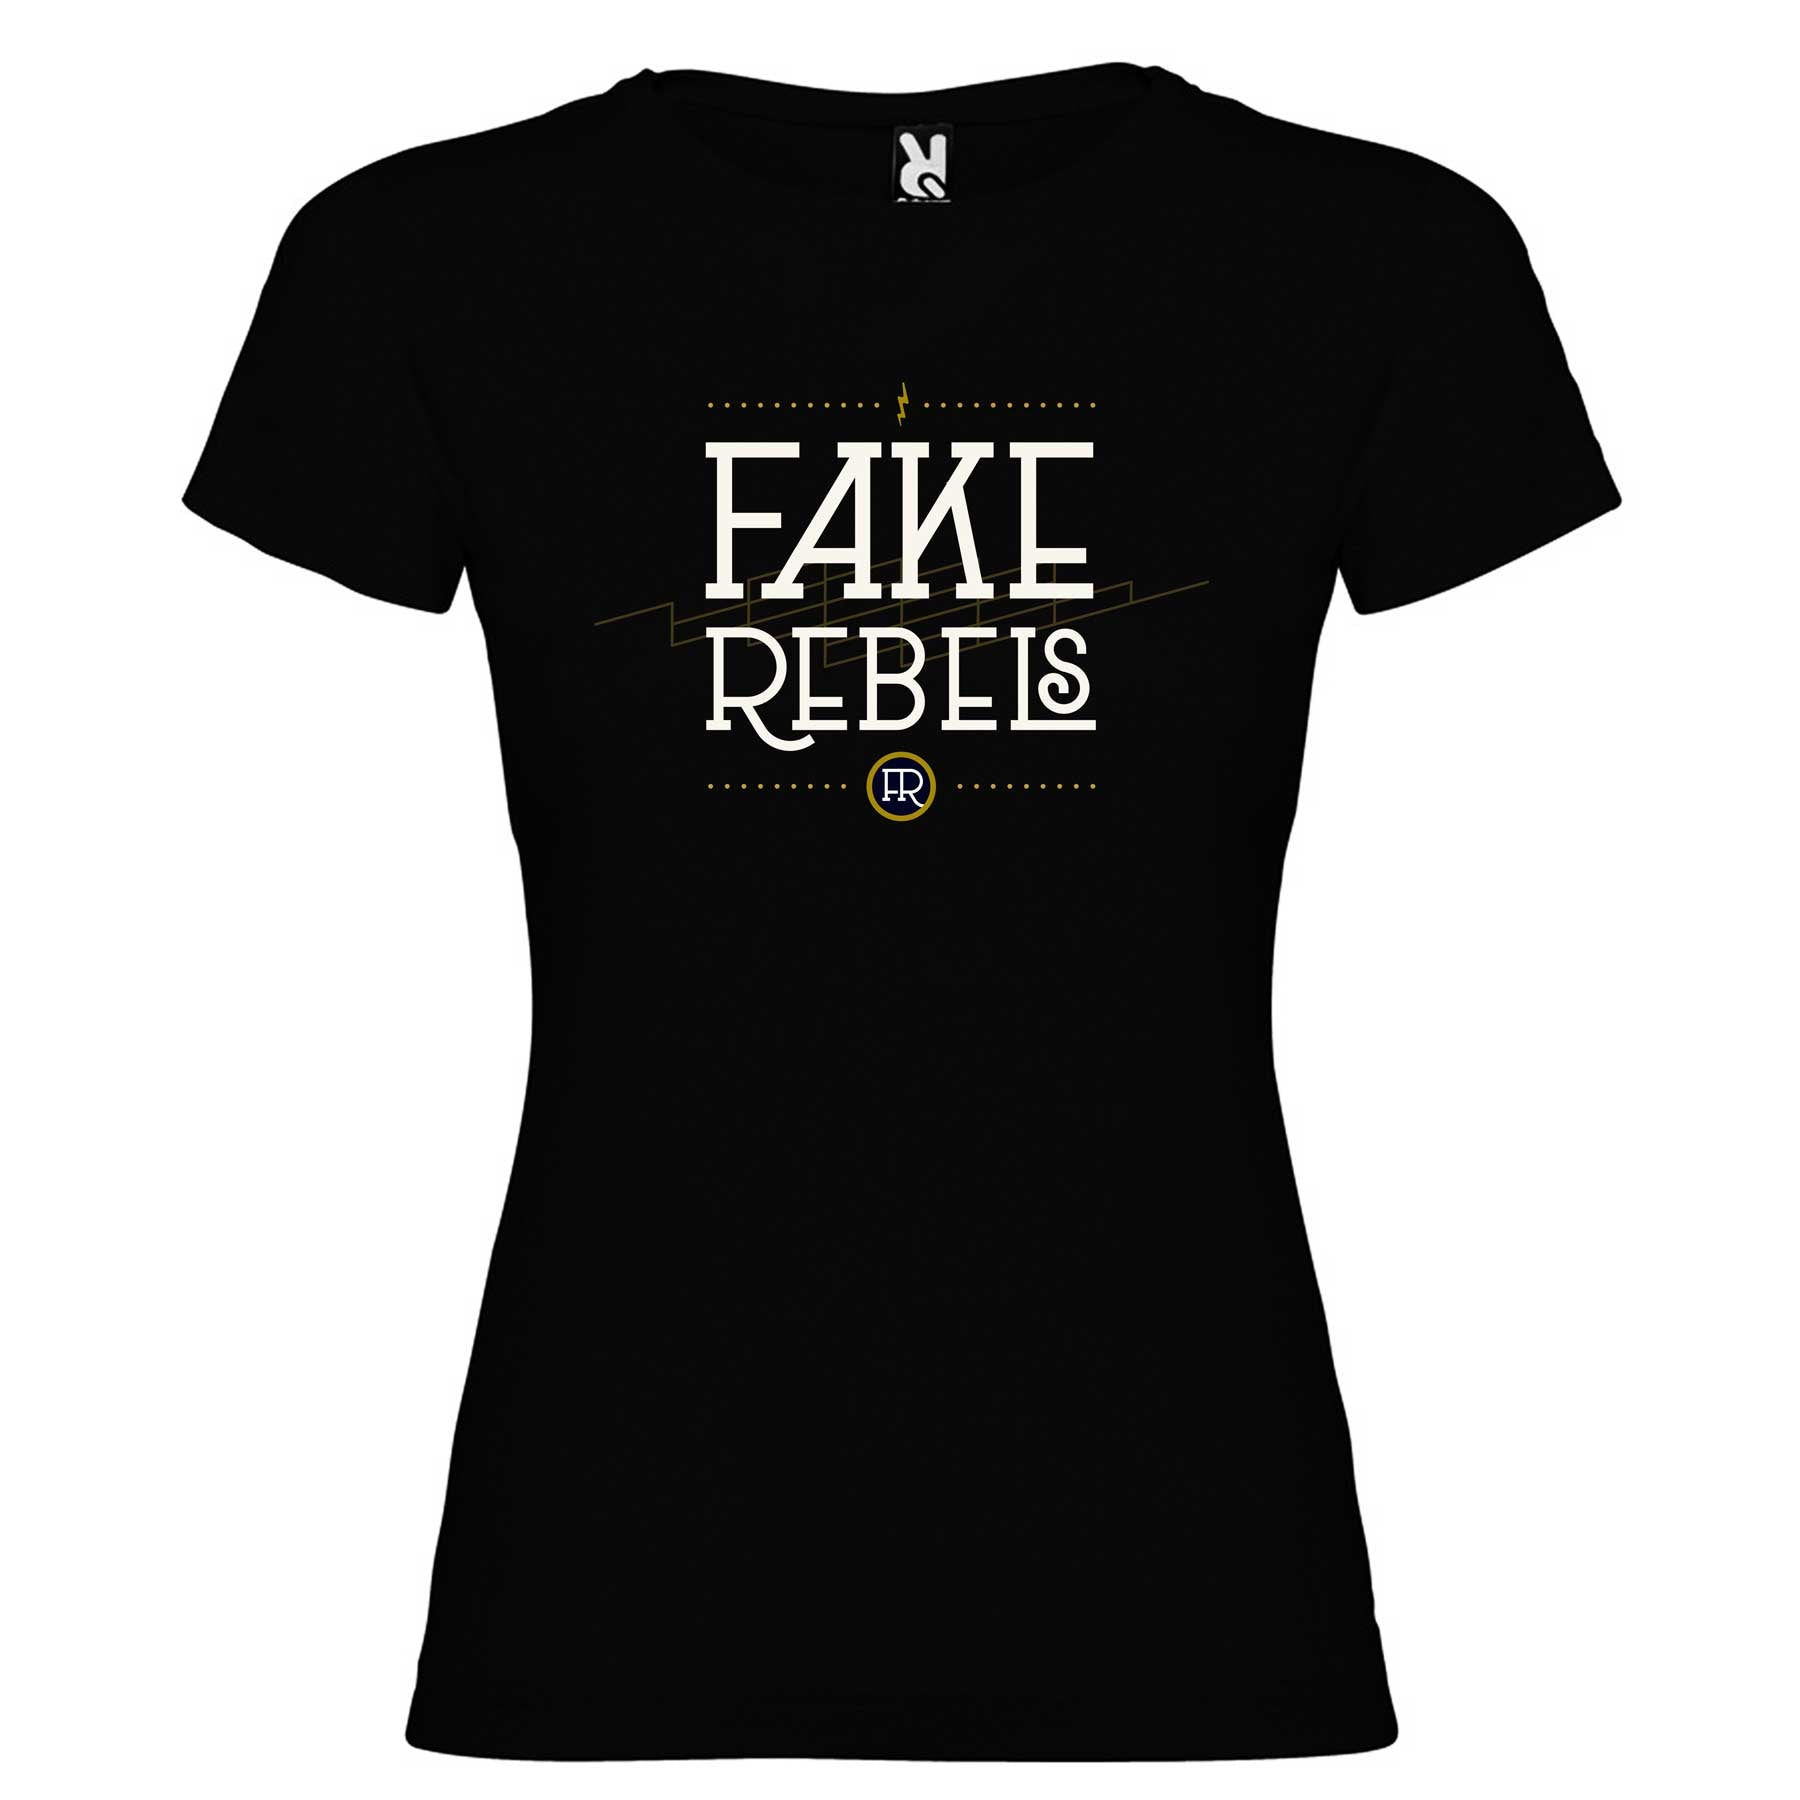 Fake Rebels - Camiseta Logo Chica - Merchanfy Imprime tus camisetas